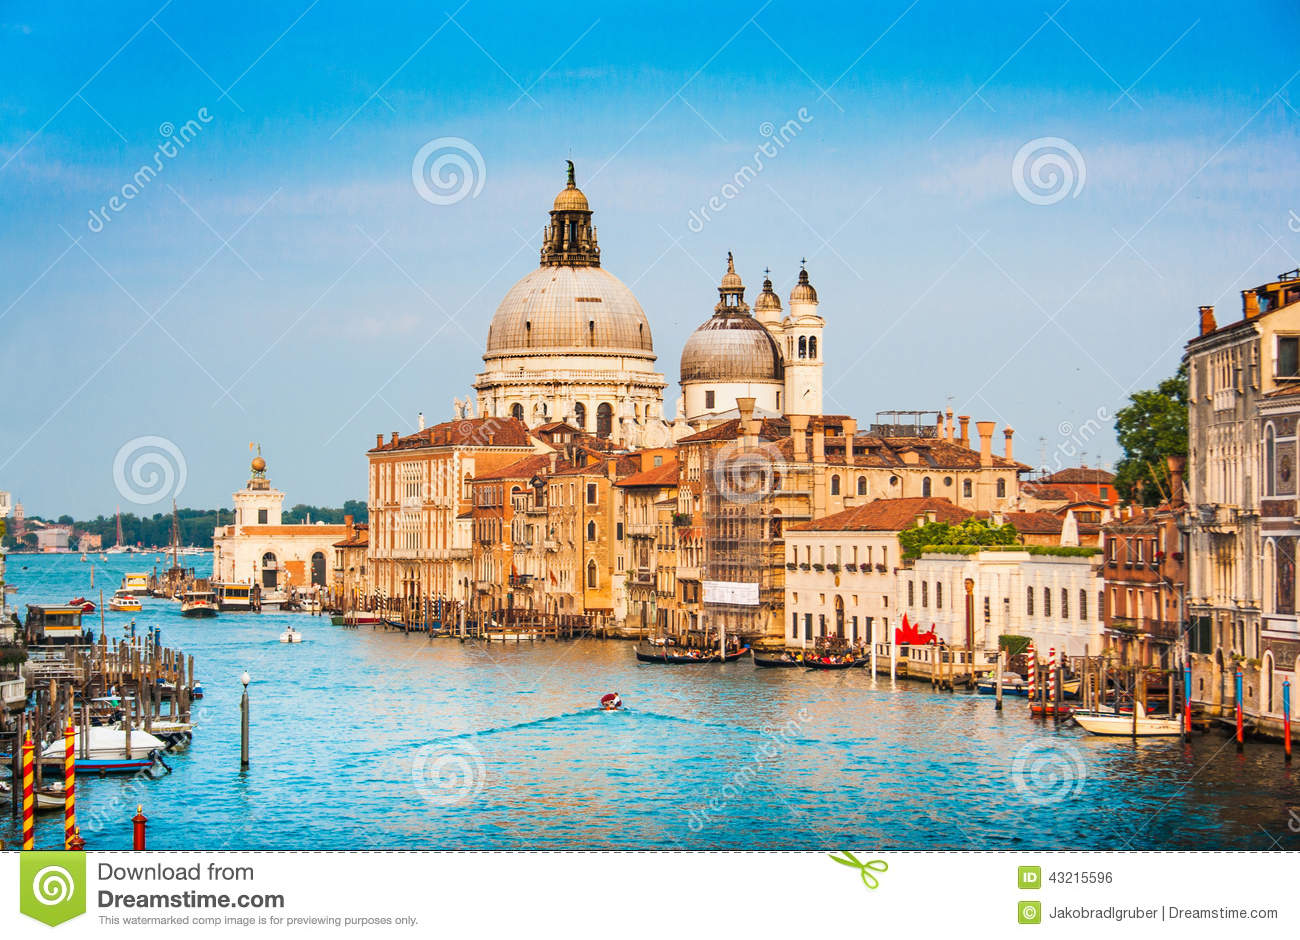 Italian Landscape Images amp Stock Pictures Royalty Free